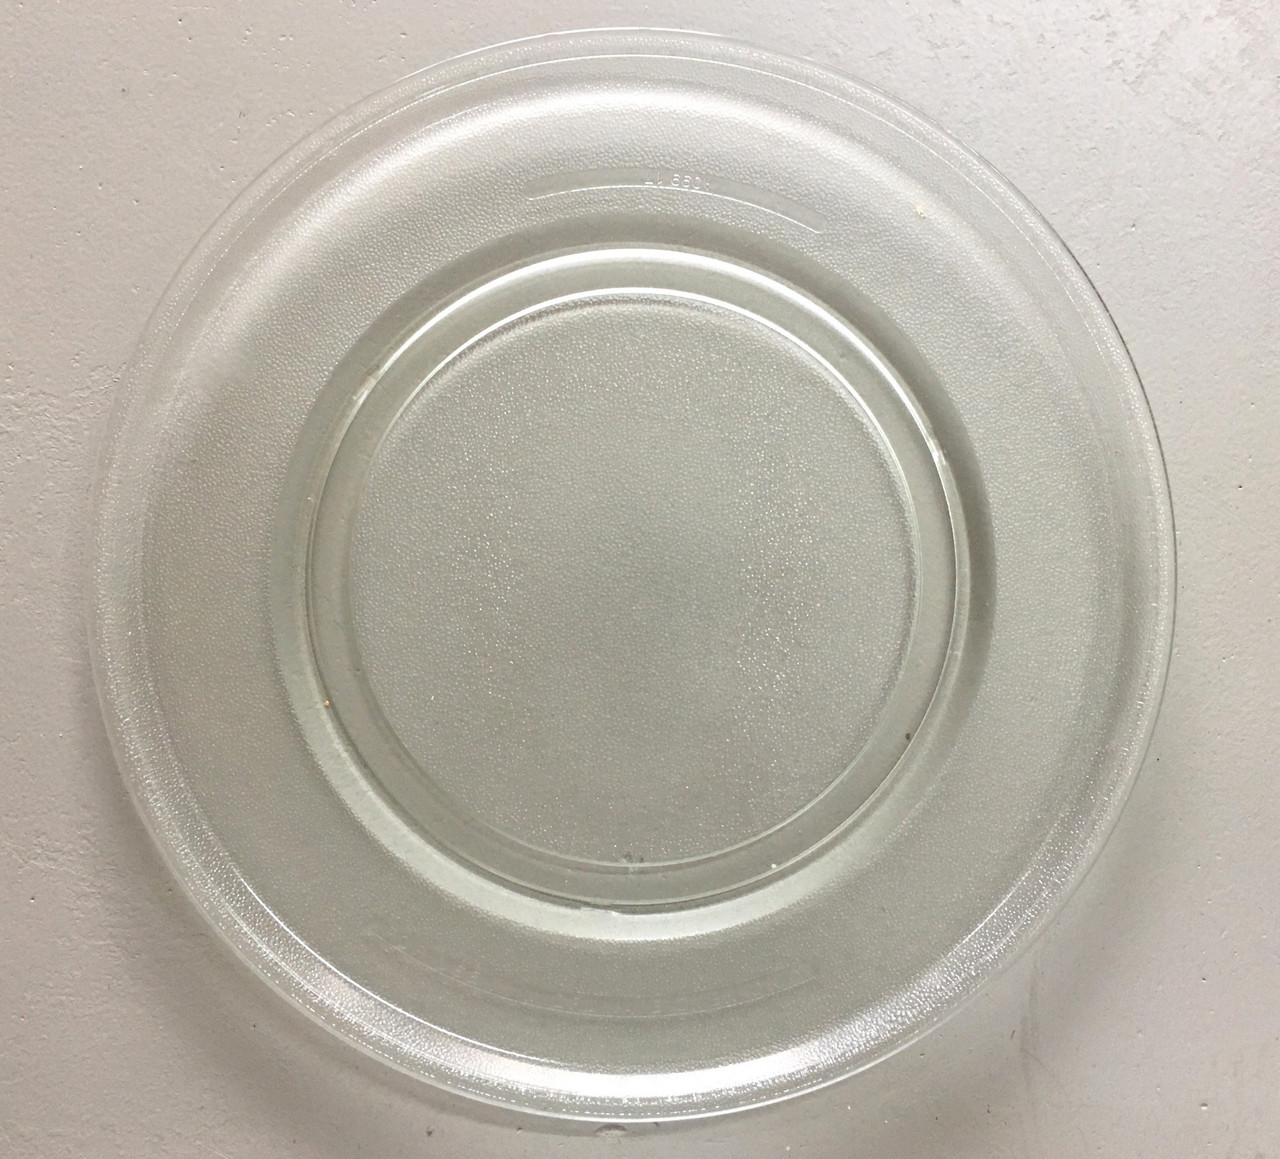 wolf microwave glass turntable plate tray 16 inches 801797 mw24 models